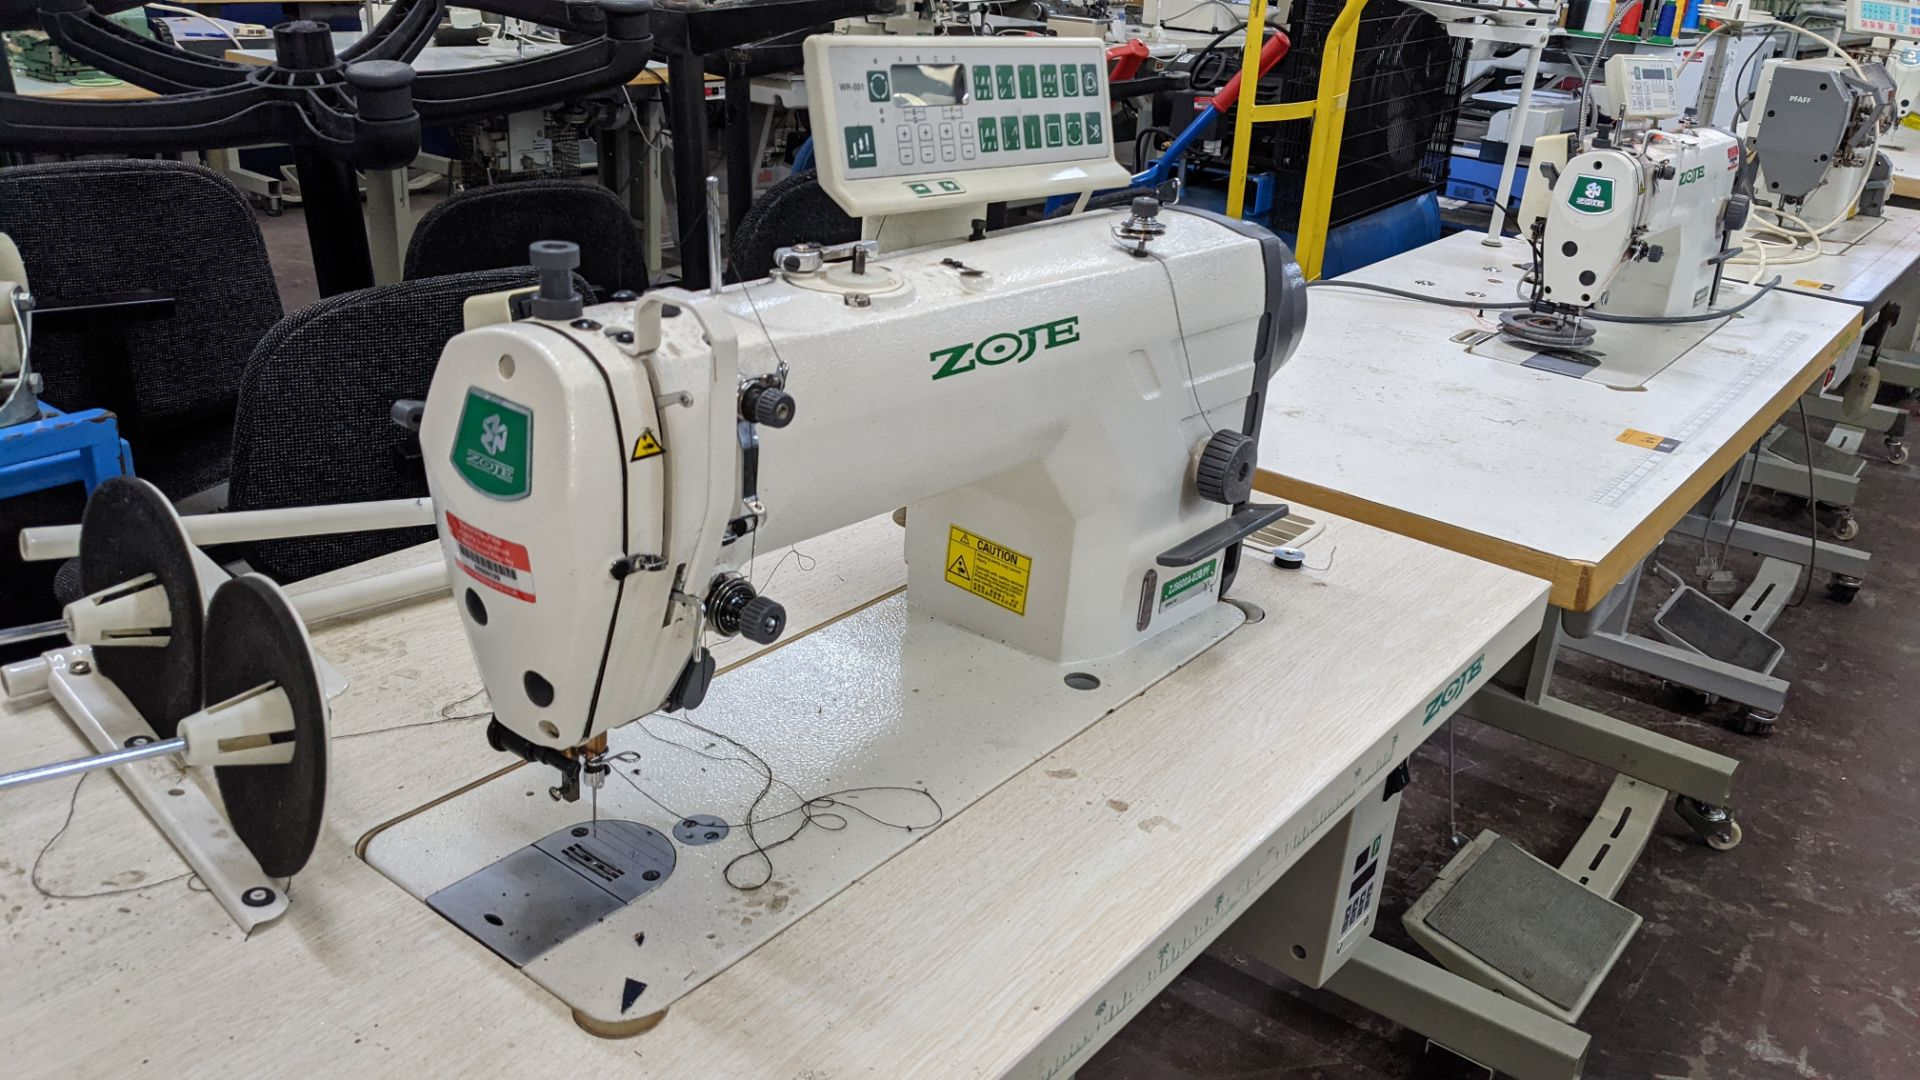 Zoje model ZJ9800A-D3B/PF sewing machine with WR-501 controller - Image 10 of 17